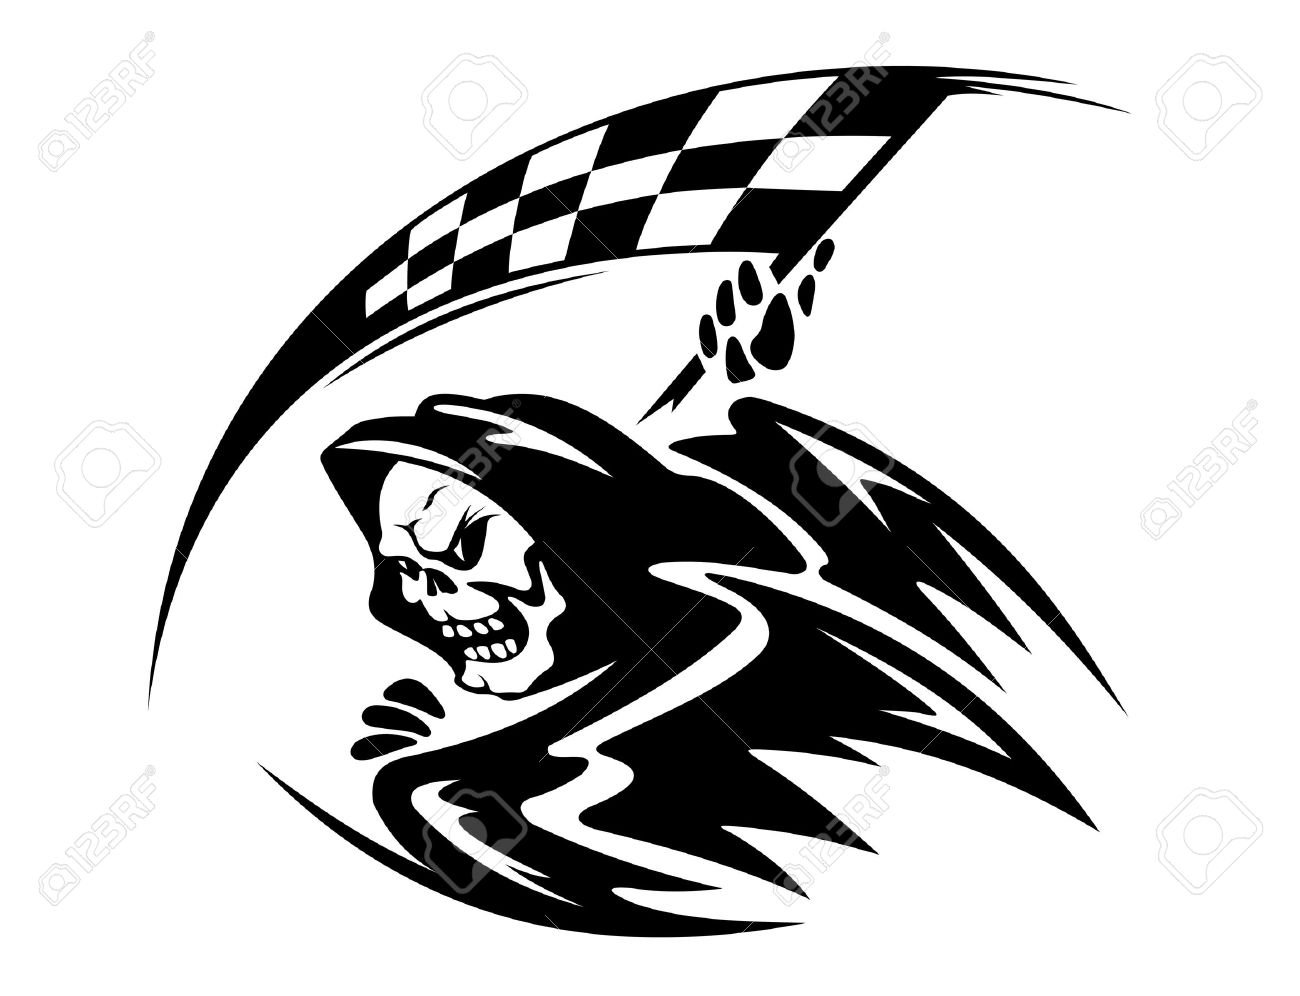 Black Danger Death Demon With Ckeckered Flag Royalty Free Cliparts.